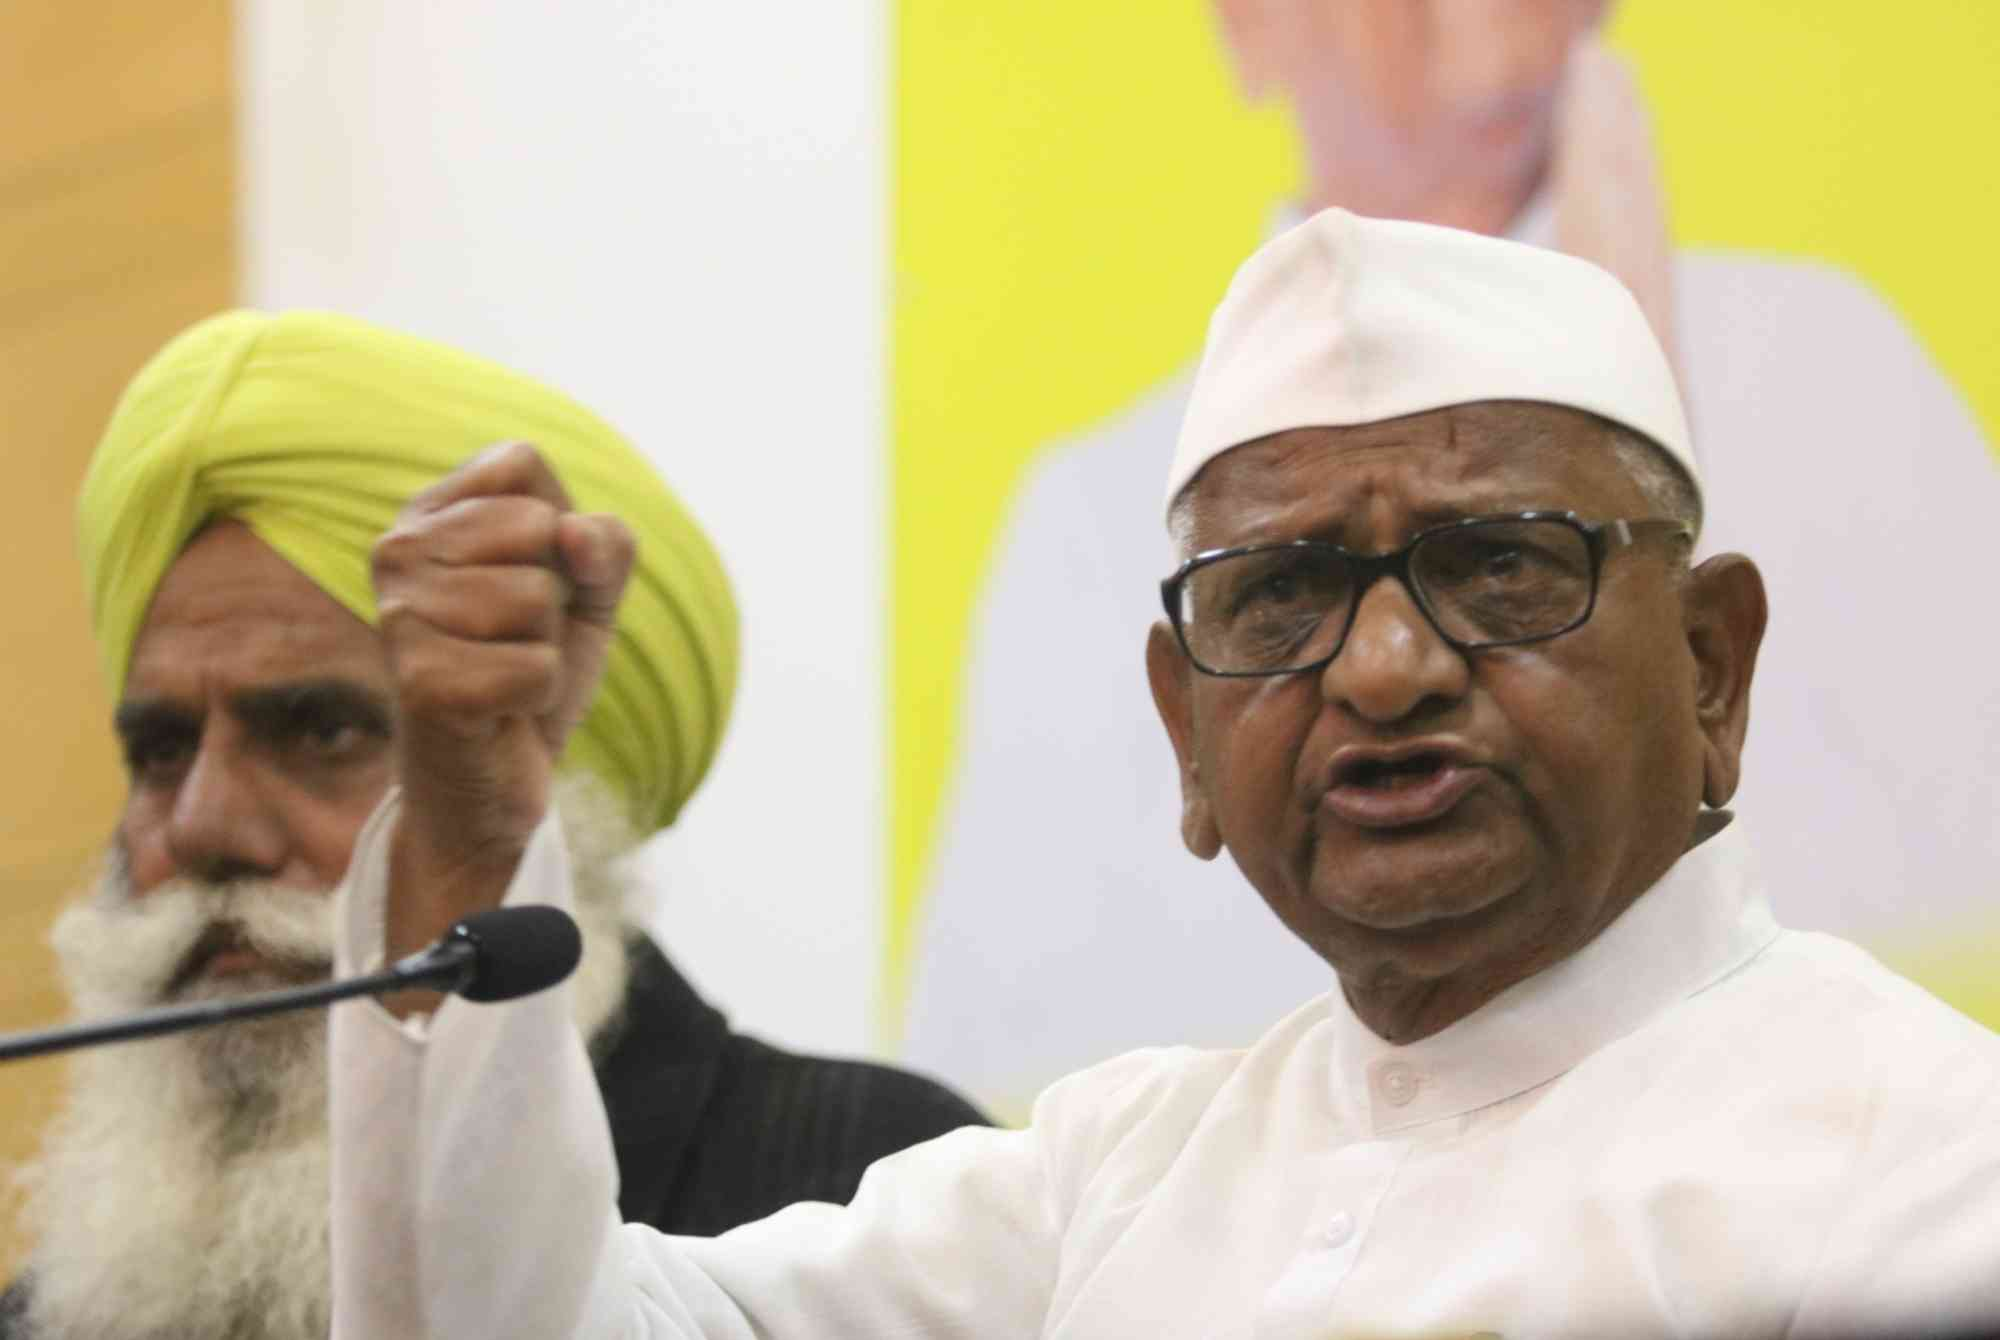 Anna Hazare addresses a press conference in Delhi on January 21, 2019. (Photo credit: IANS).